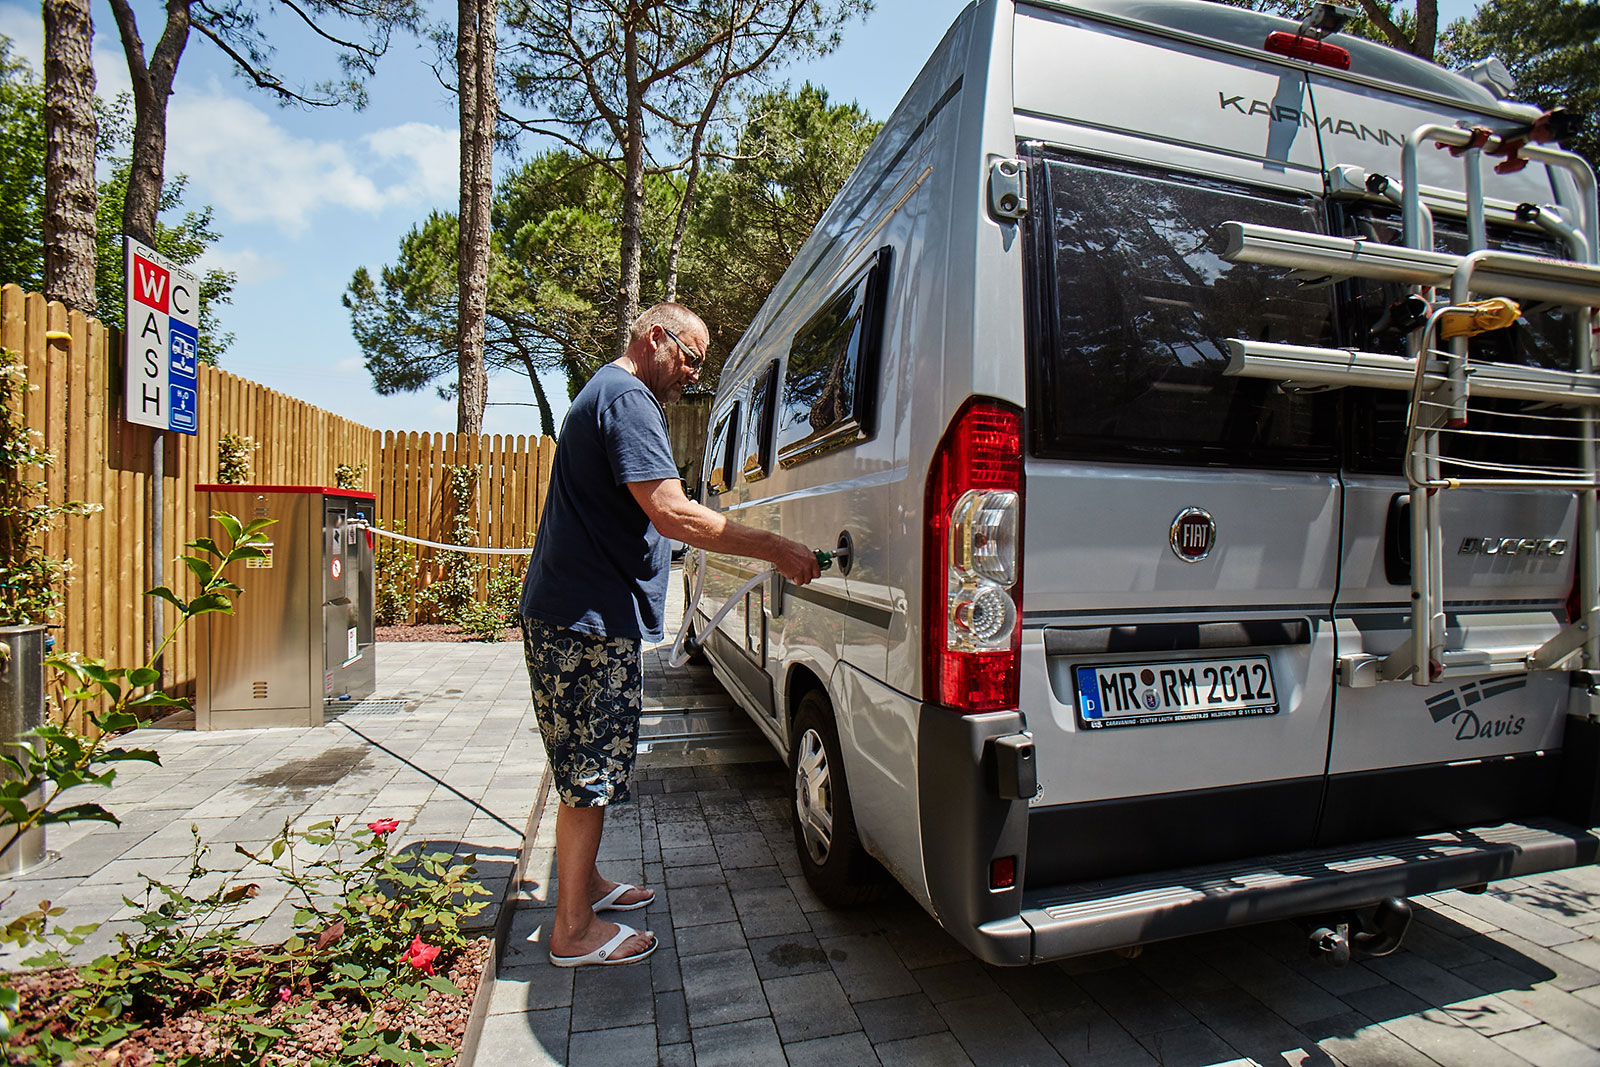 8--Campsite-for-campers-in-Cavallino